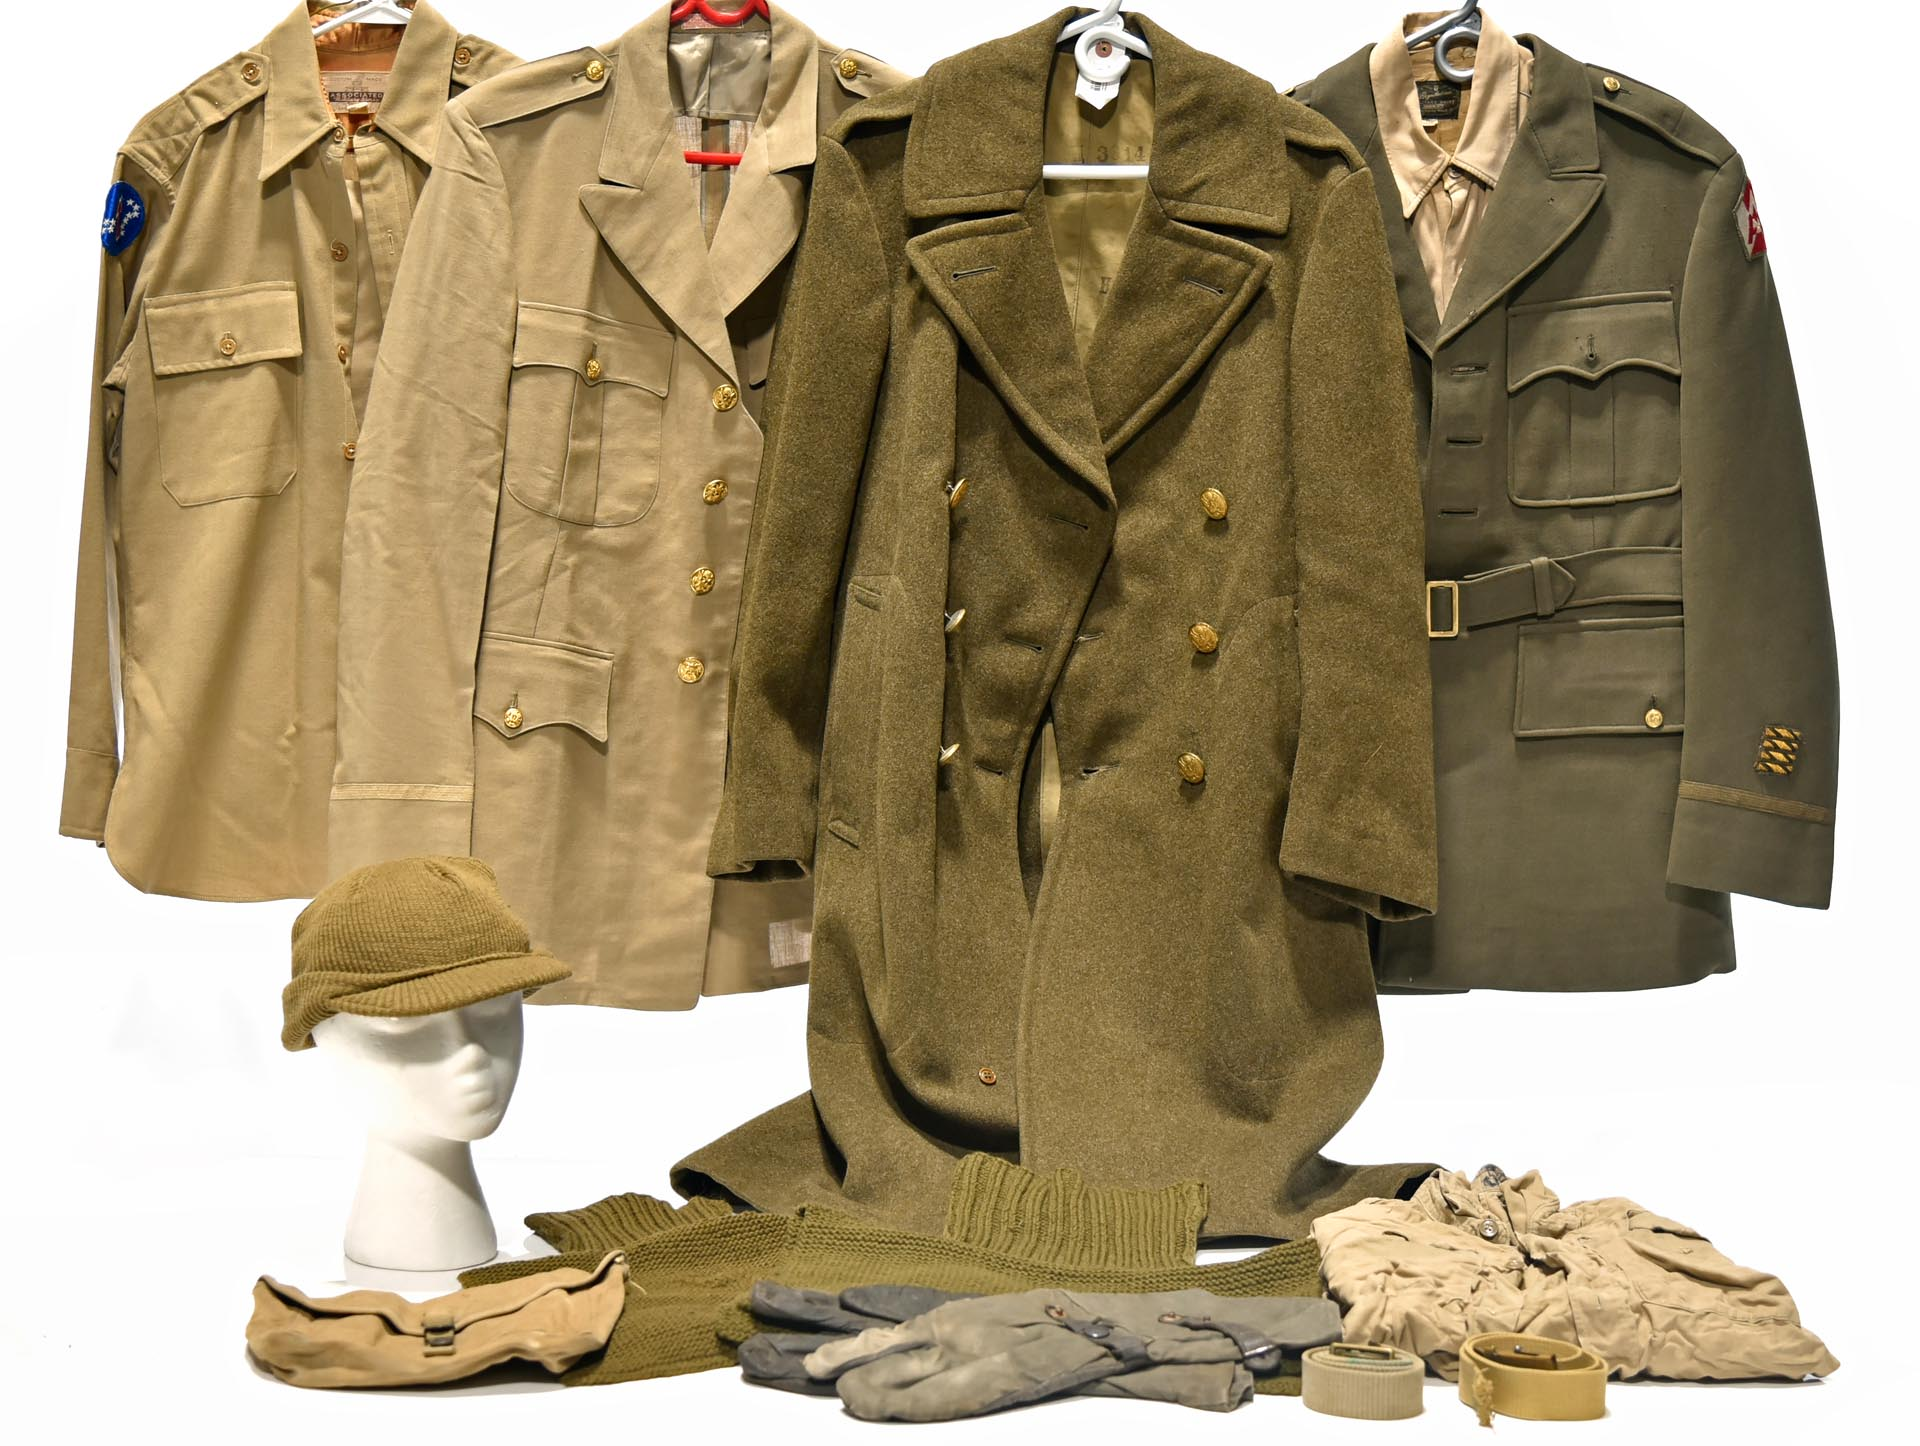 Original U.S. Army Uniforms and Field Kit Collection